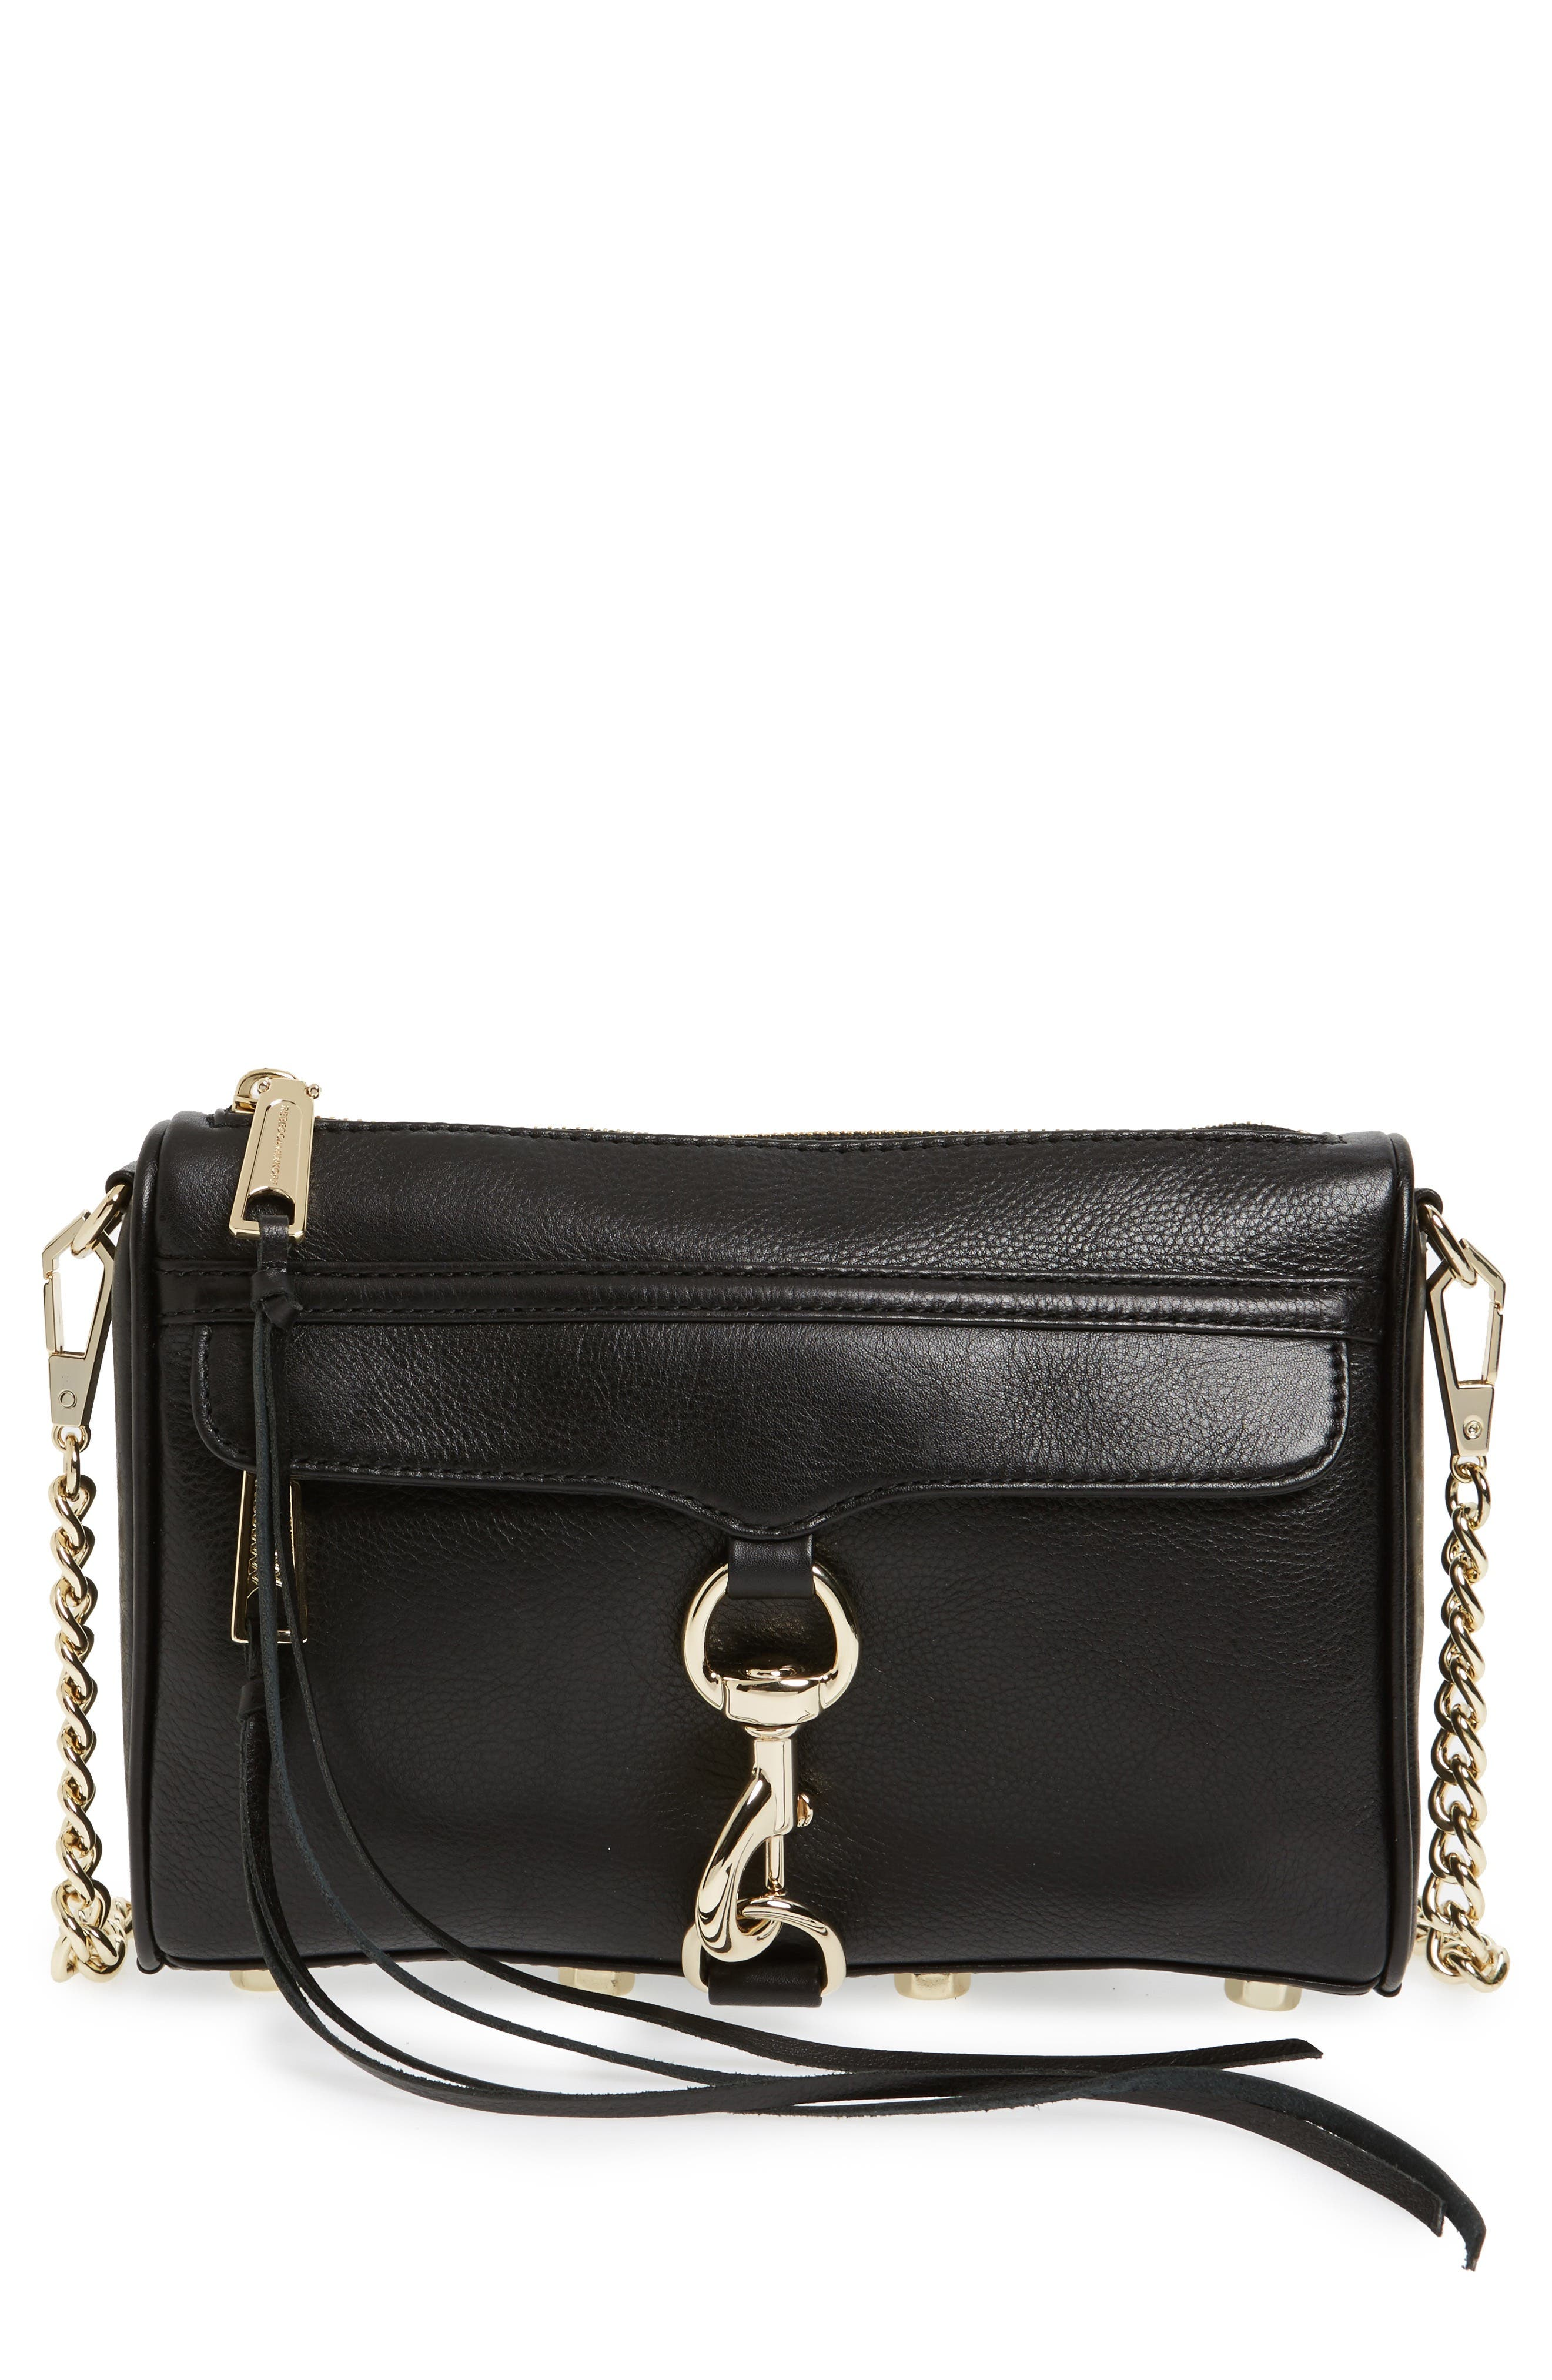 Mini MAC Convertible Crossbody Bag,                         Main,                         color, BLACK LEATHER/ LT GOLD HRDWR